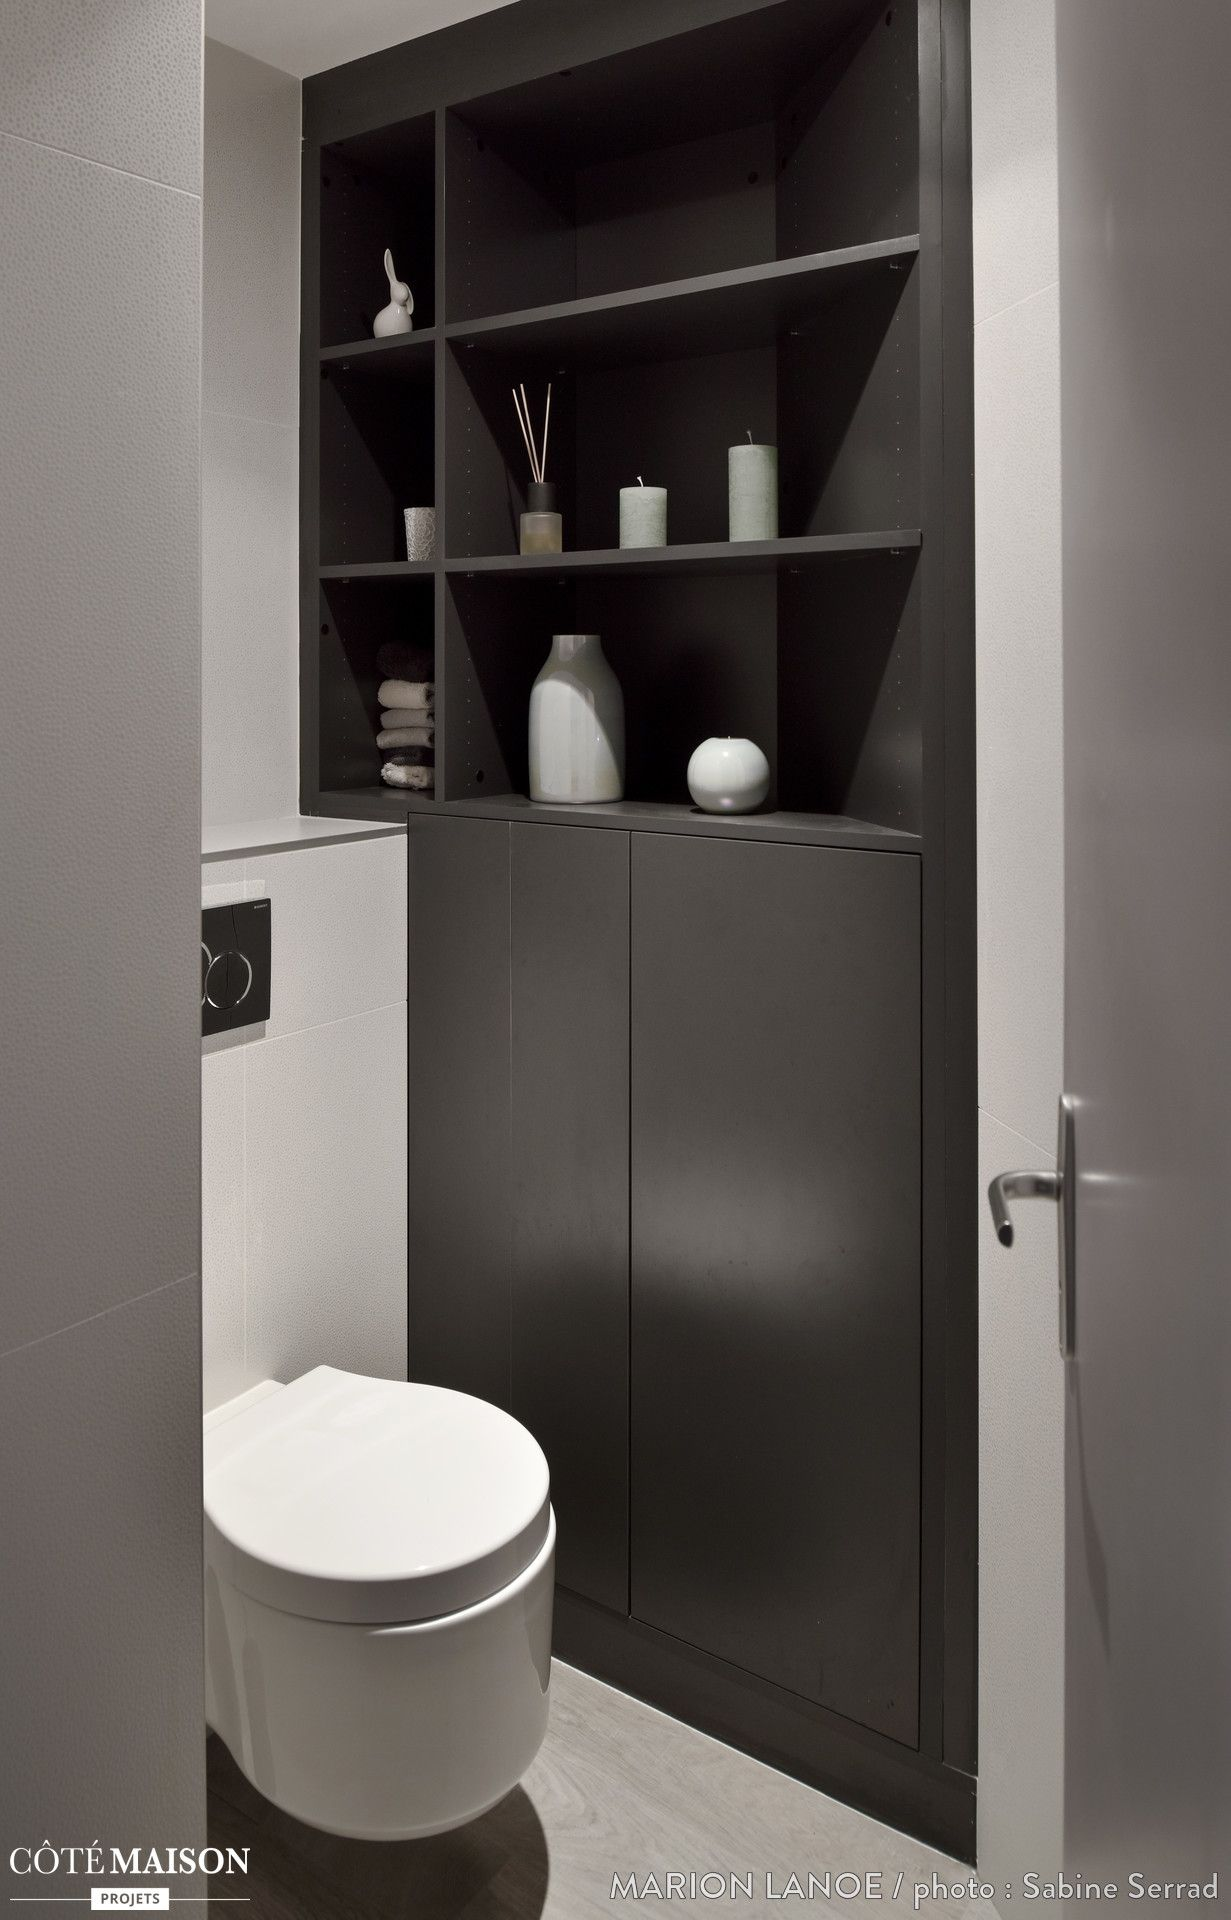 des toilettes en noir et blanc design classiques simple. Black Bedroom Furniture Sets. Home Design Ideas